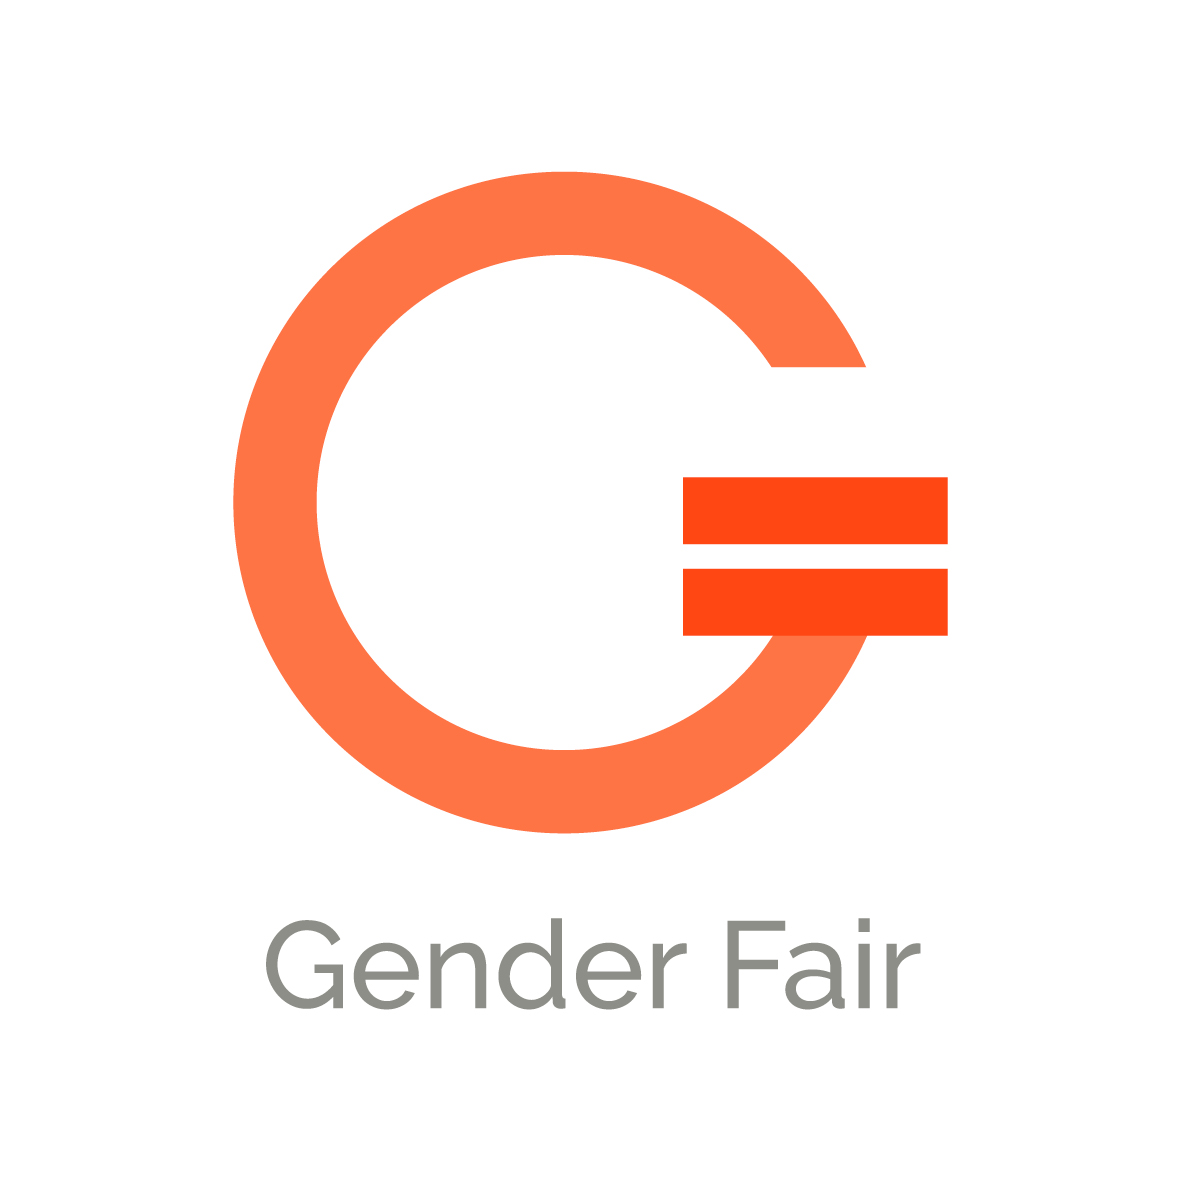 Gender Fair logo